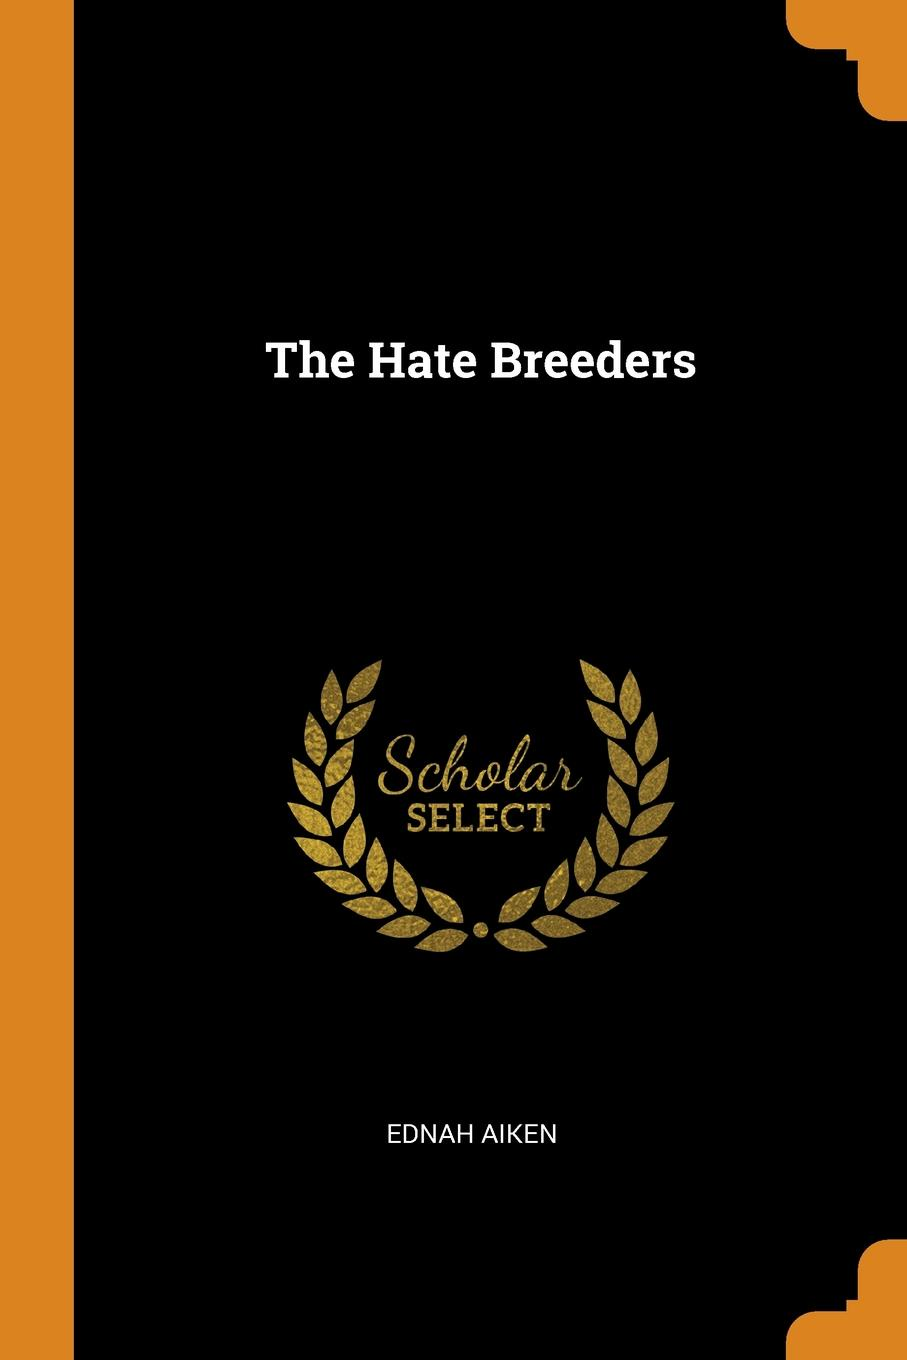 Ednah Aiken The Hate Breeders